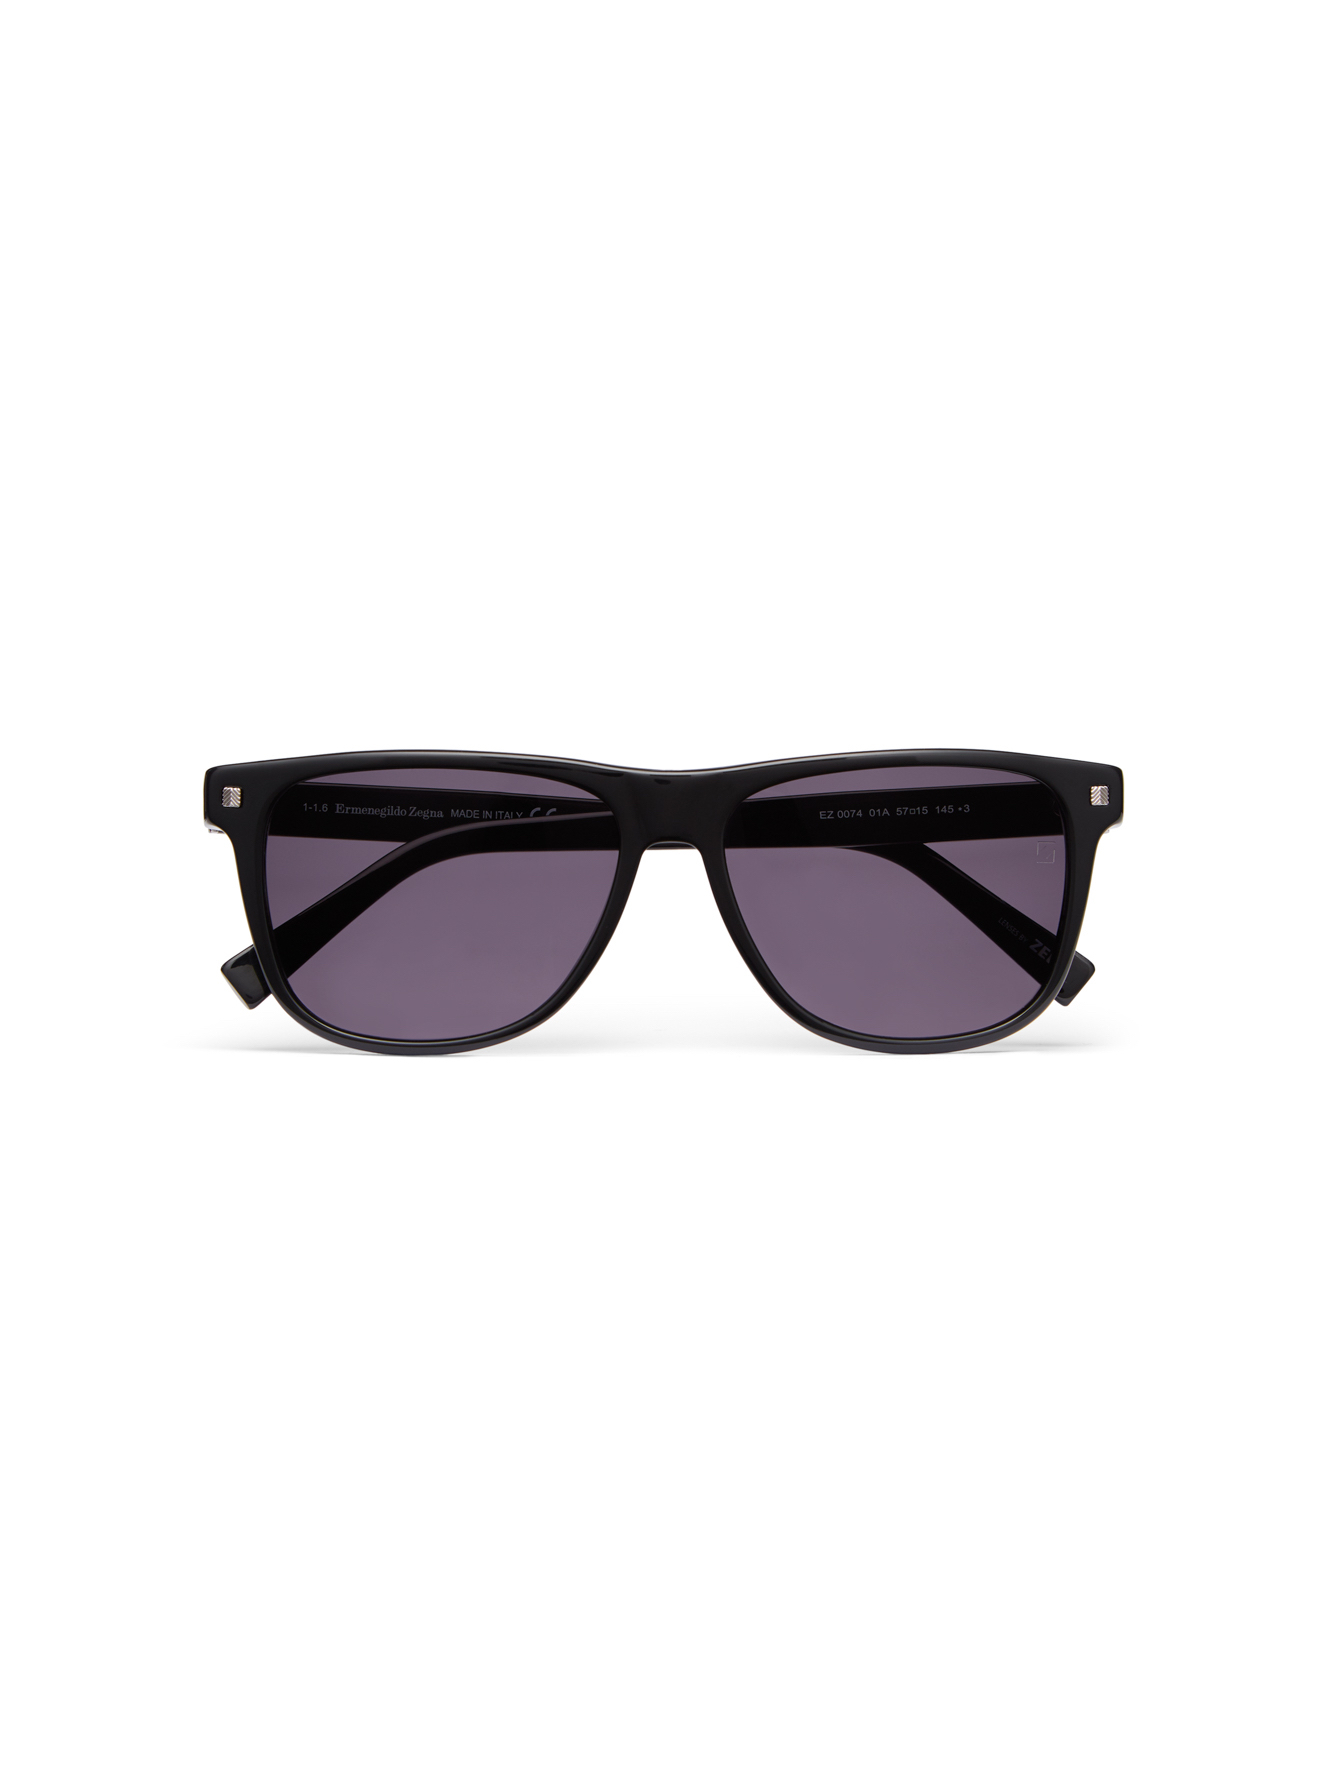 Black Square Wayfarer Sunglasses £165